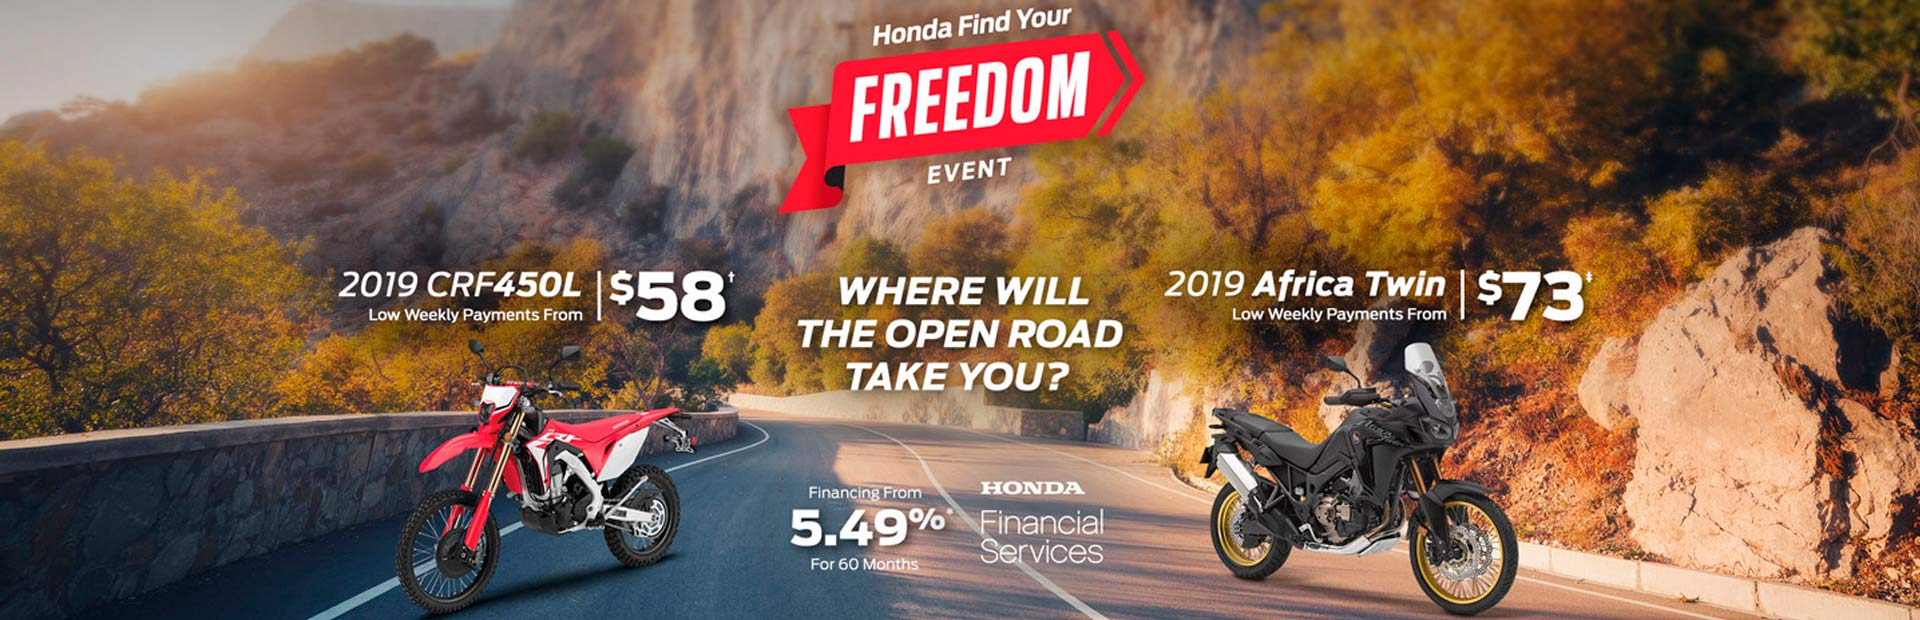 Honda: Honda Find Your Freedom Event